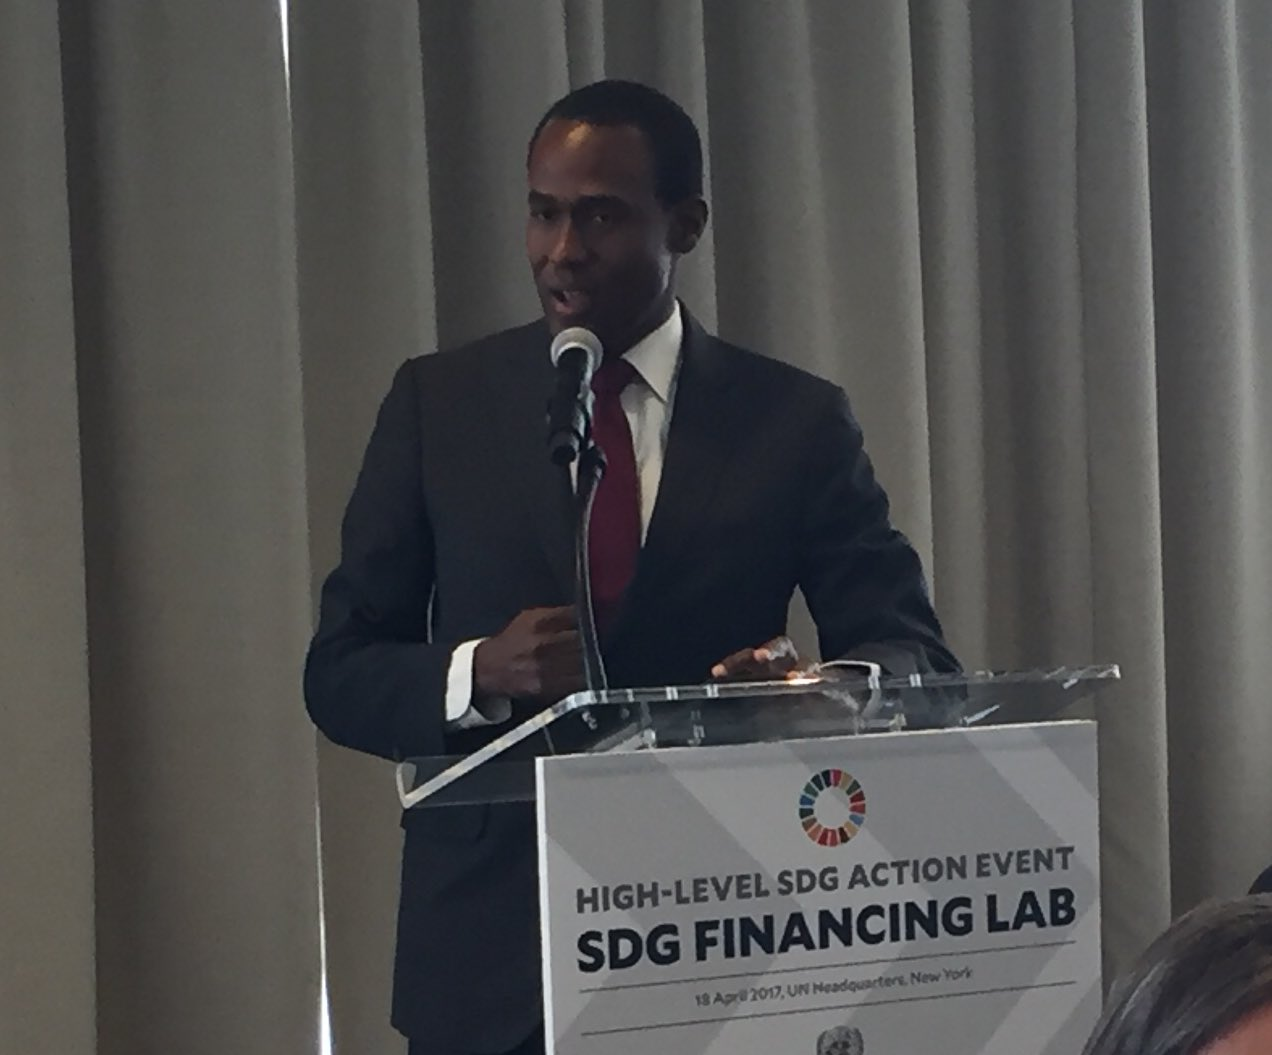 #SDGFinancing doesnt happen automatically for small reforming developing countries, needs more support, says Dr Nigel Clarke of #Jamaica https://t.co/wWY34Xme9b